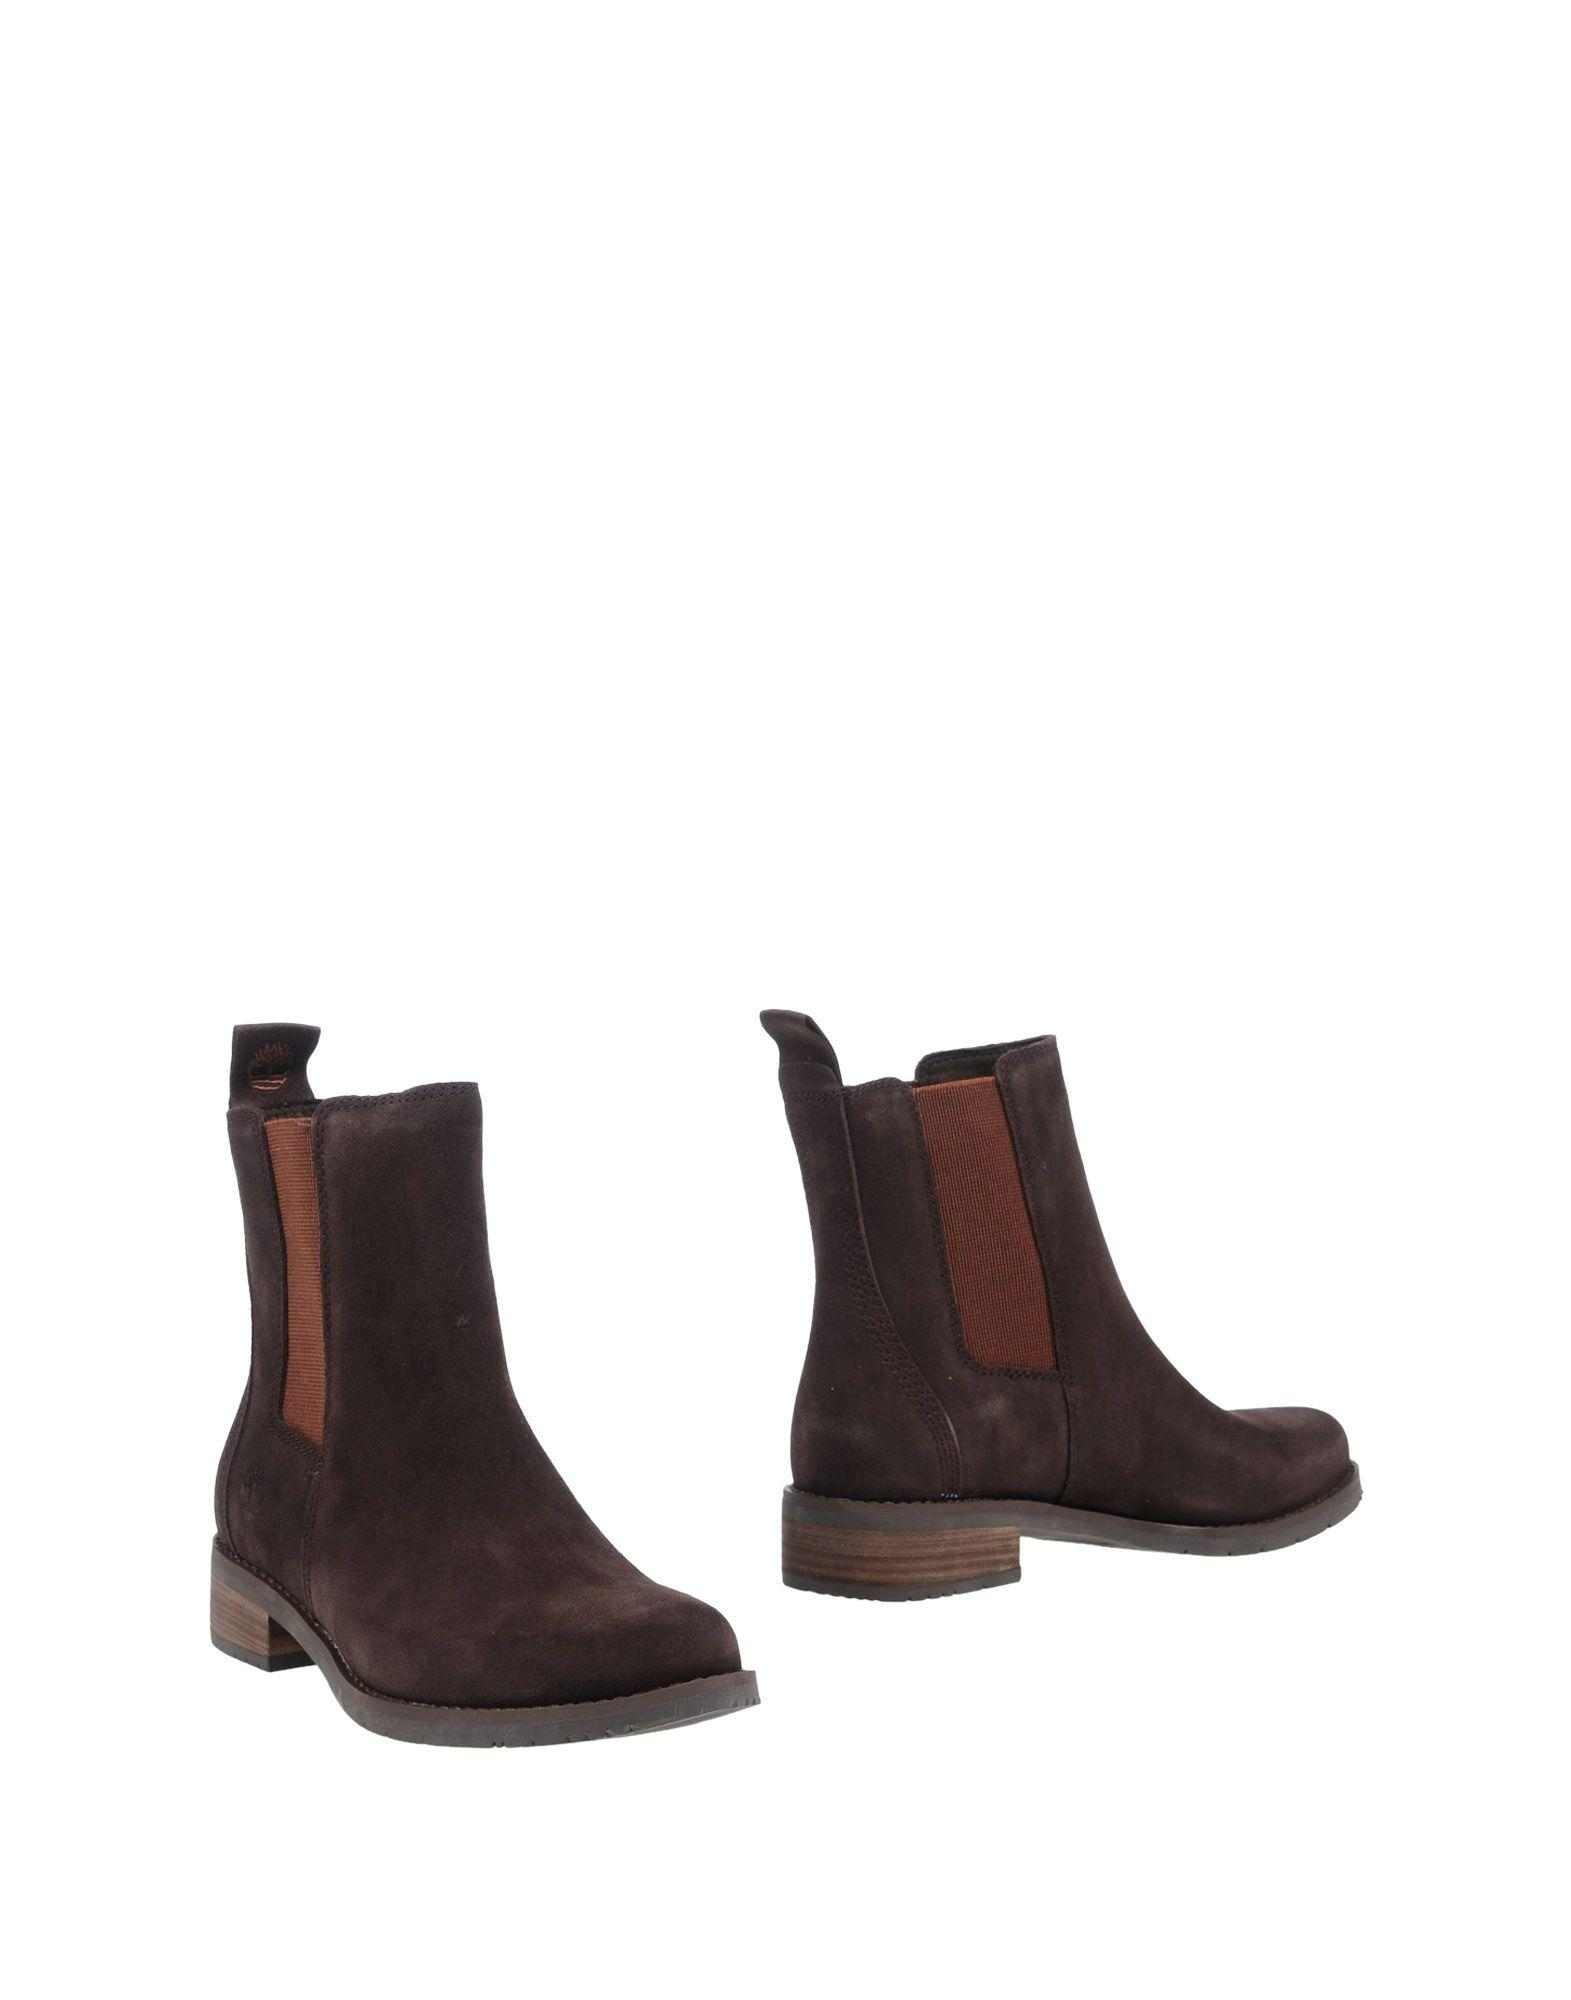 Timberland Ankle Boot In Cocoa